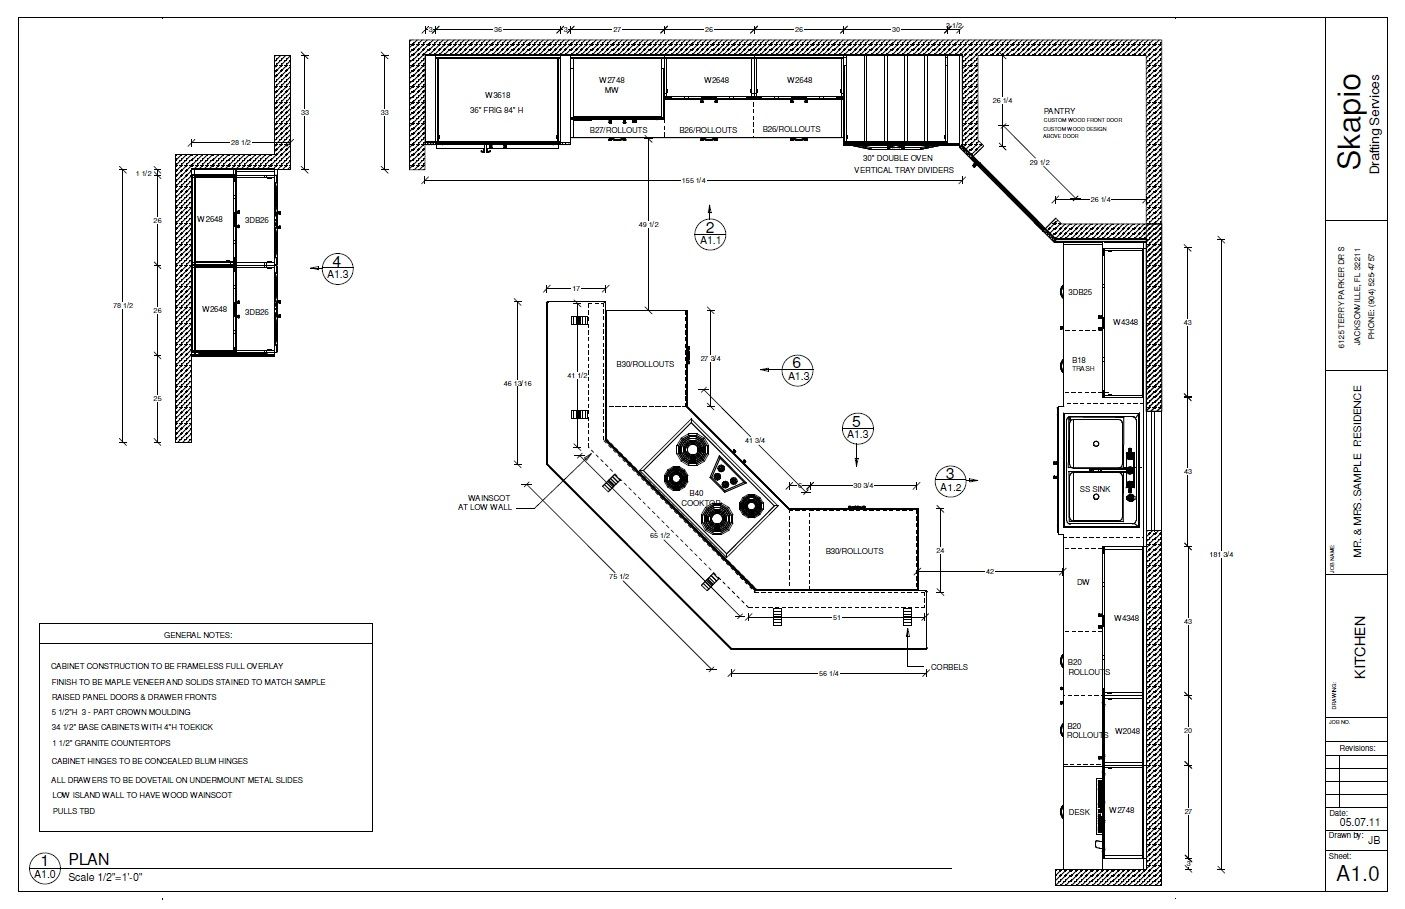 Sample Kitchen Floor Plan | Shop Drawings | Pinterest | Kitchen ...